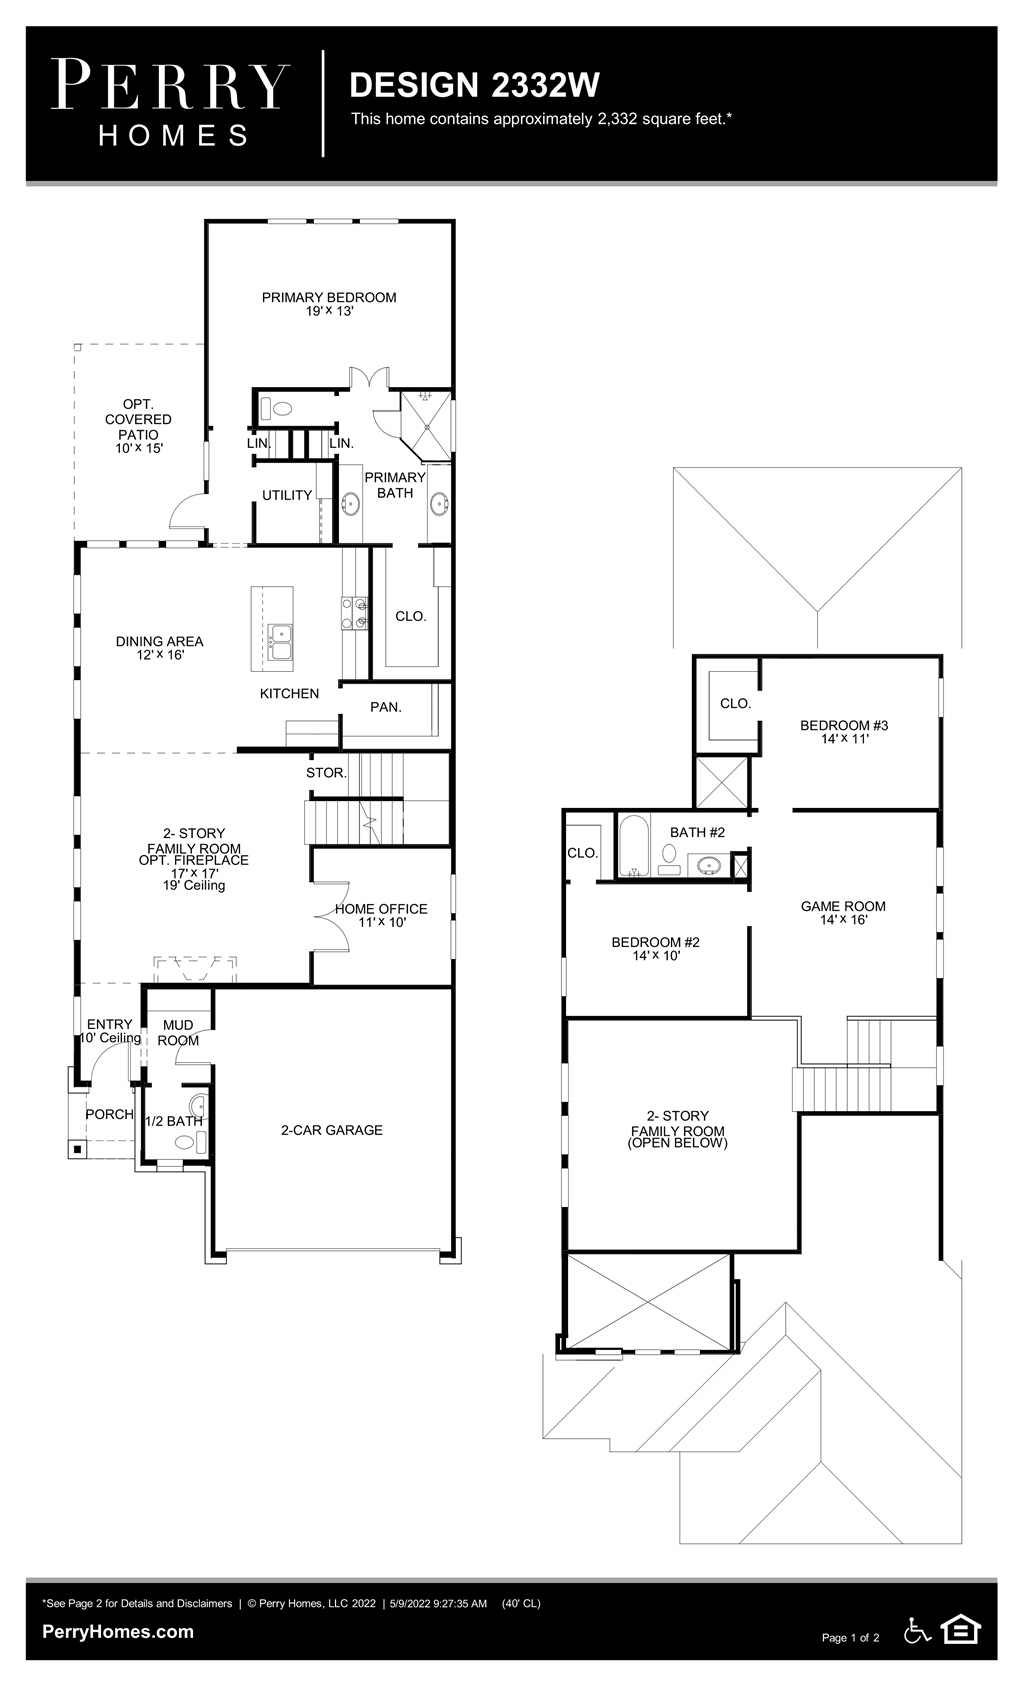 Floor Plan for 2332W